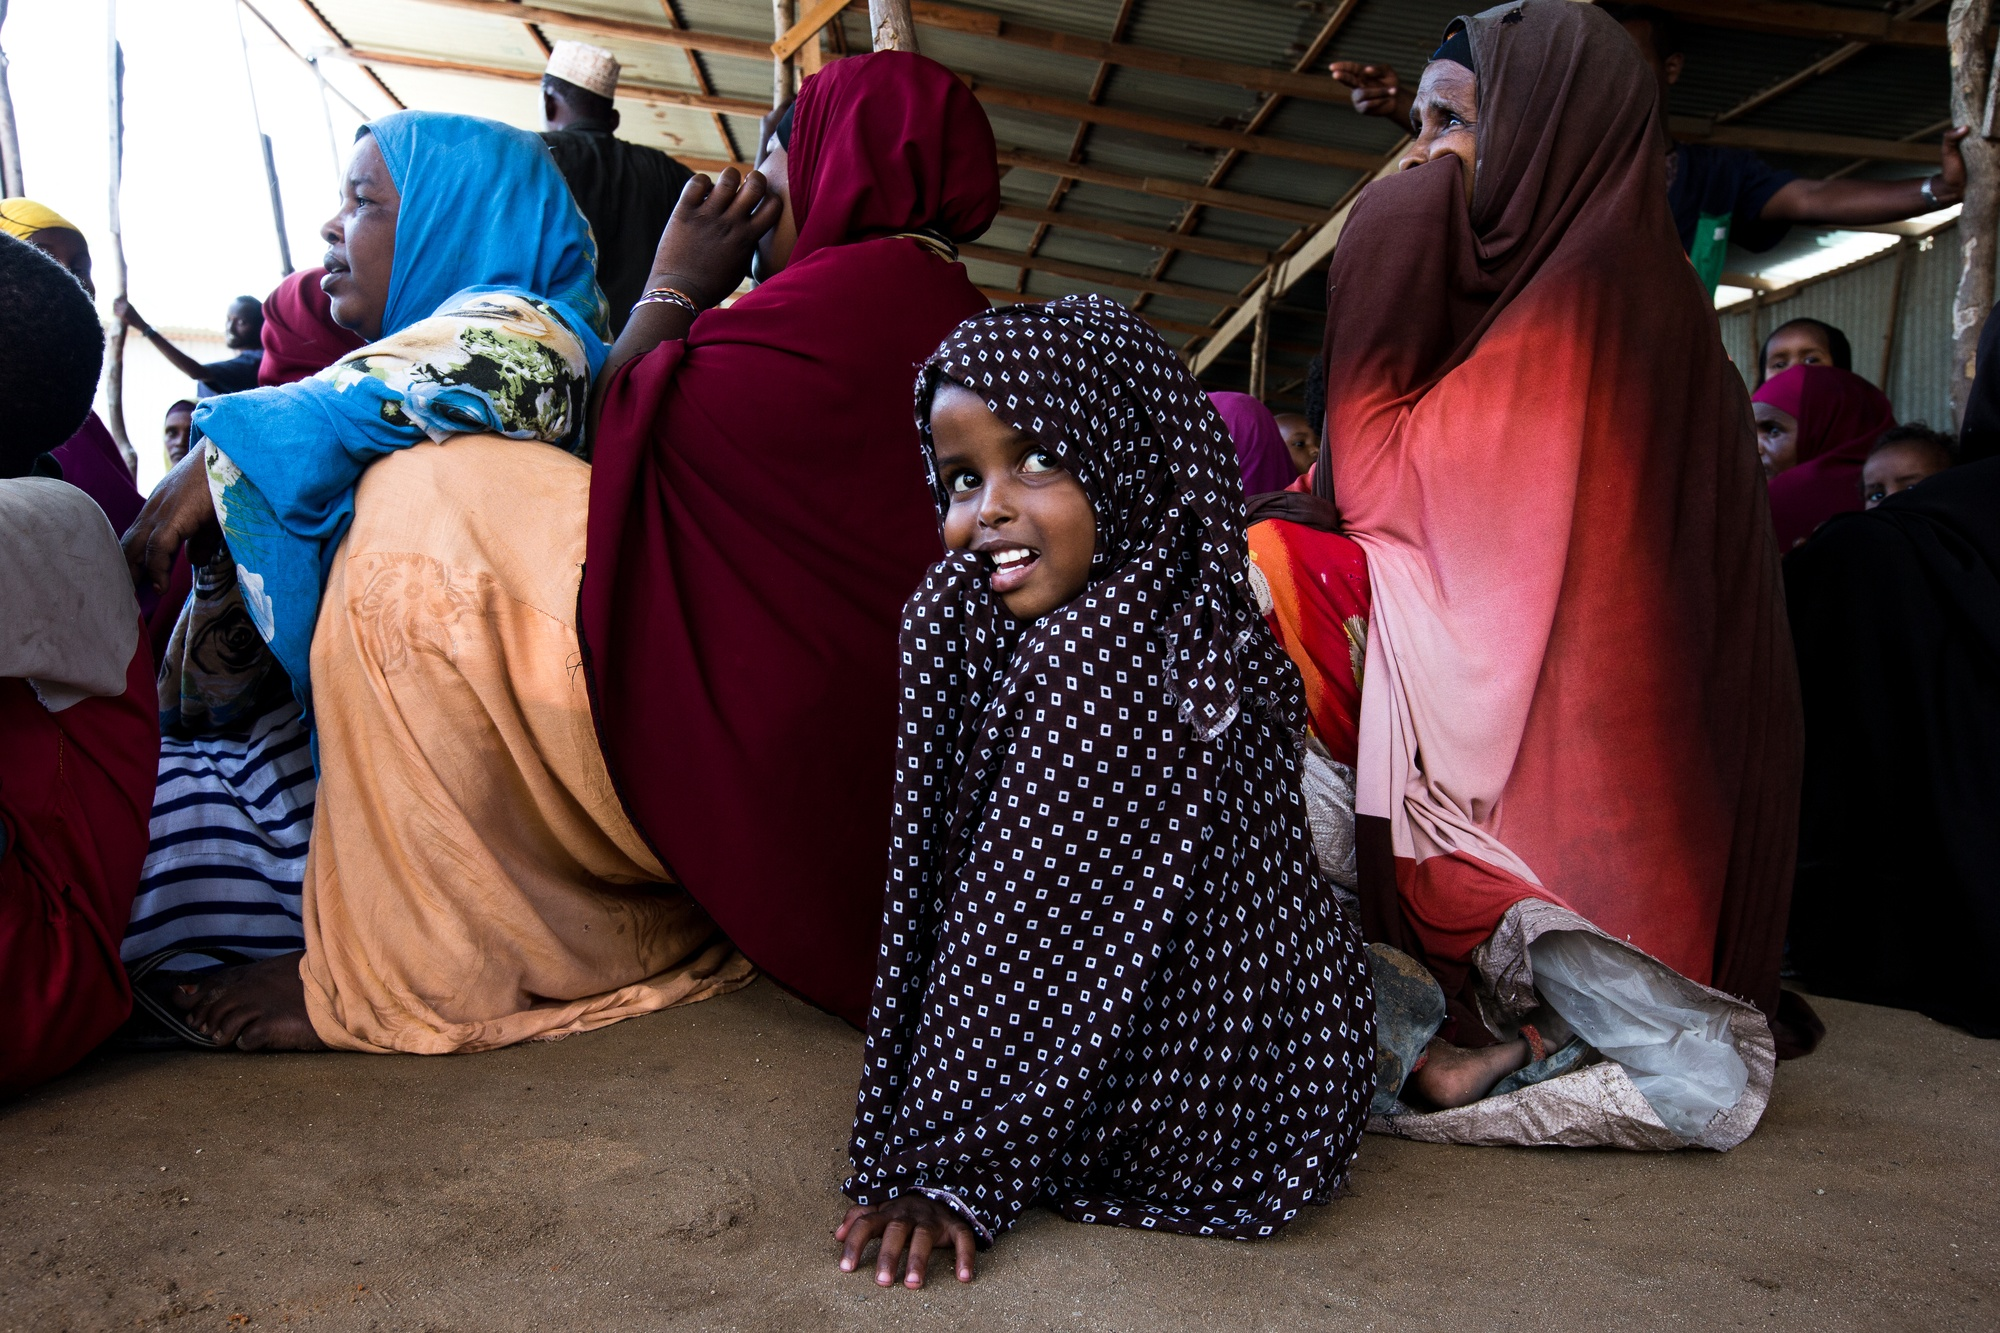 A young girl sits in a line at a food center, wearing a polka dot hijab over her head